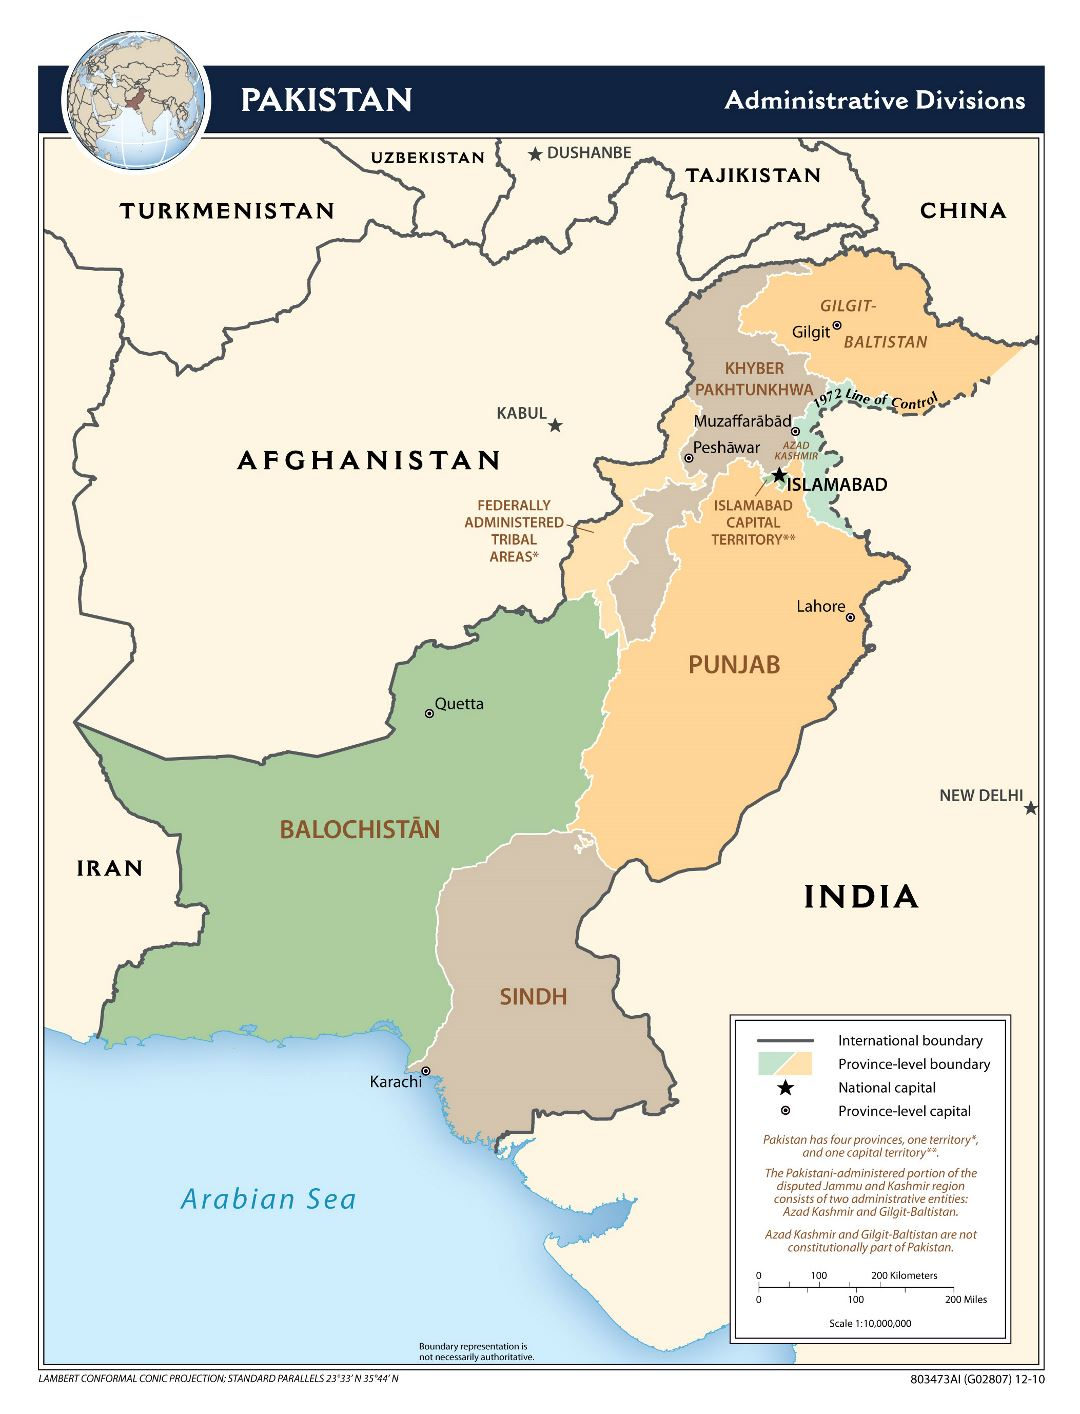 Large administrative divisions map of Pakistan - 2010